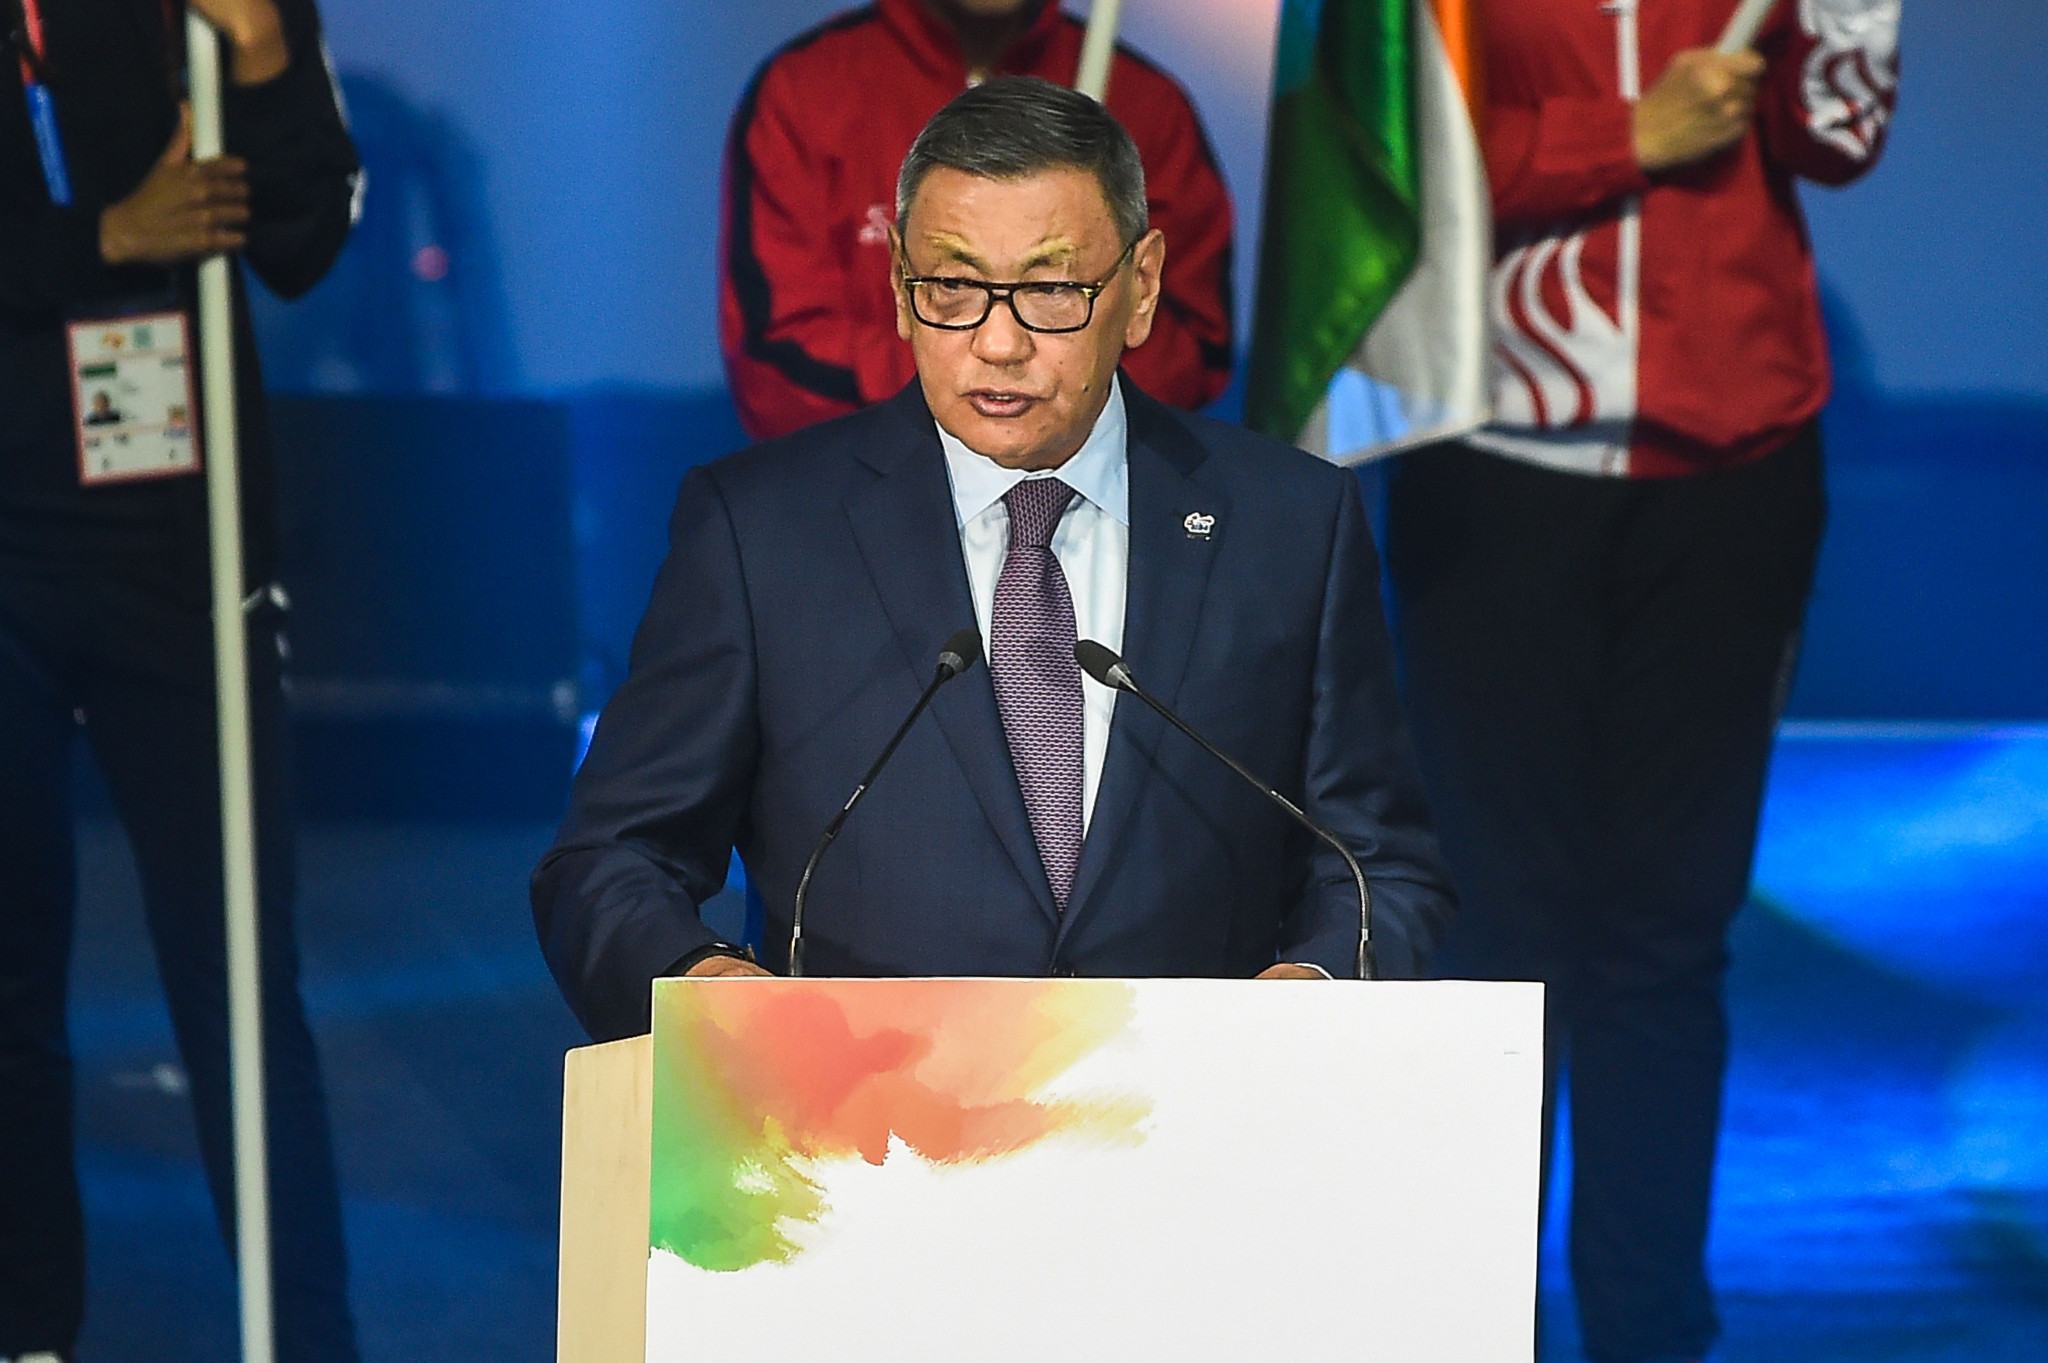 Gafur Rakhimov's election as AIBA President has resulted in widespread controversy ©Getty Images